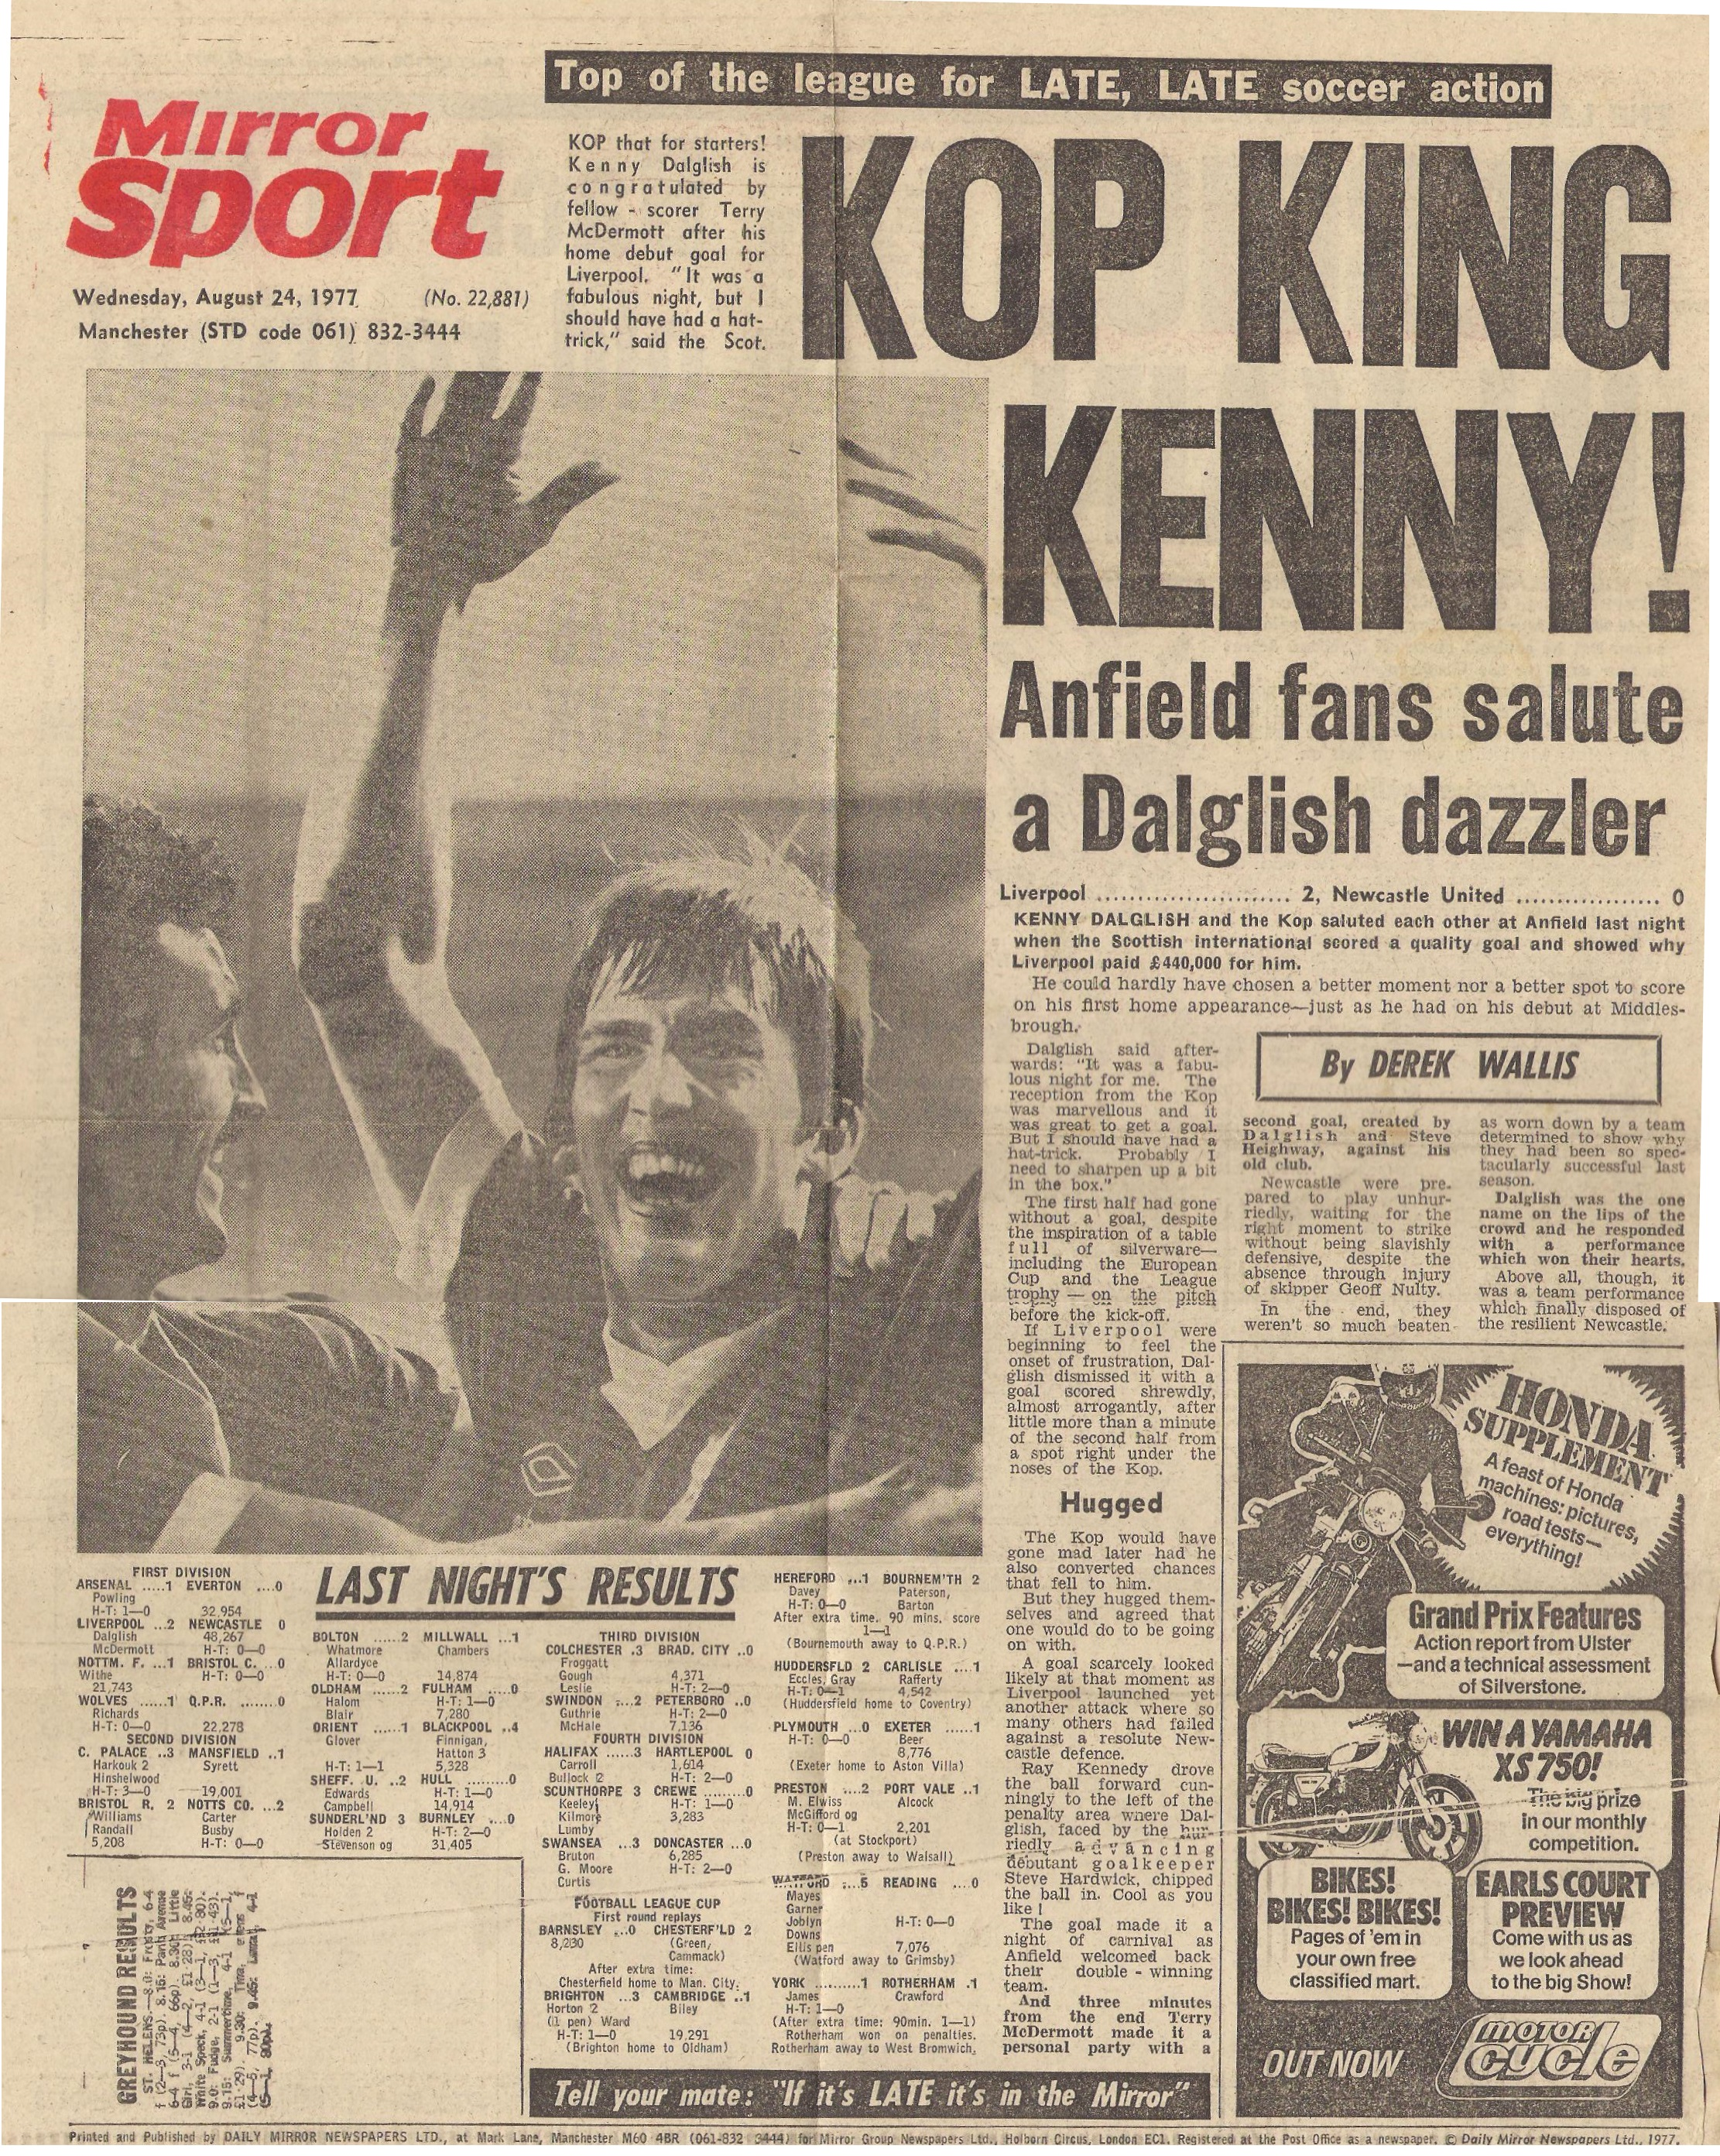 Kop king Kenny! - 23 August 1977